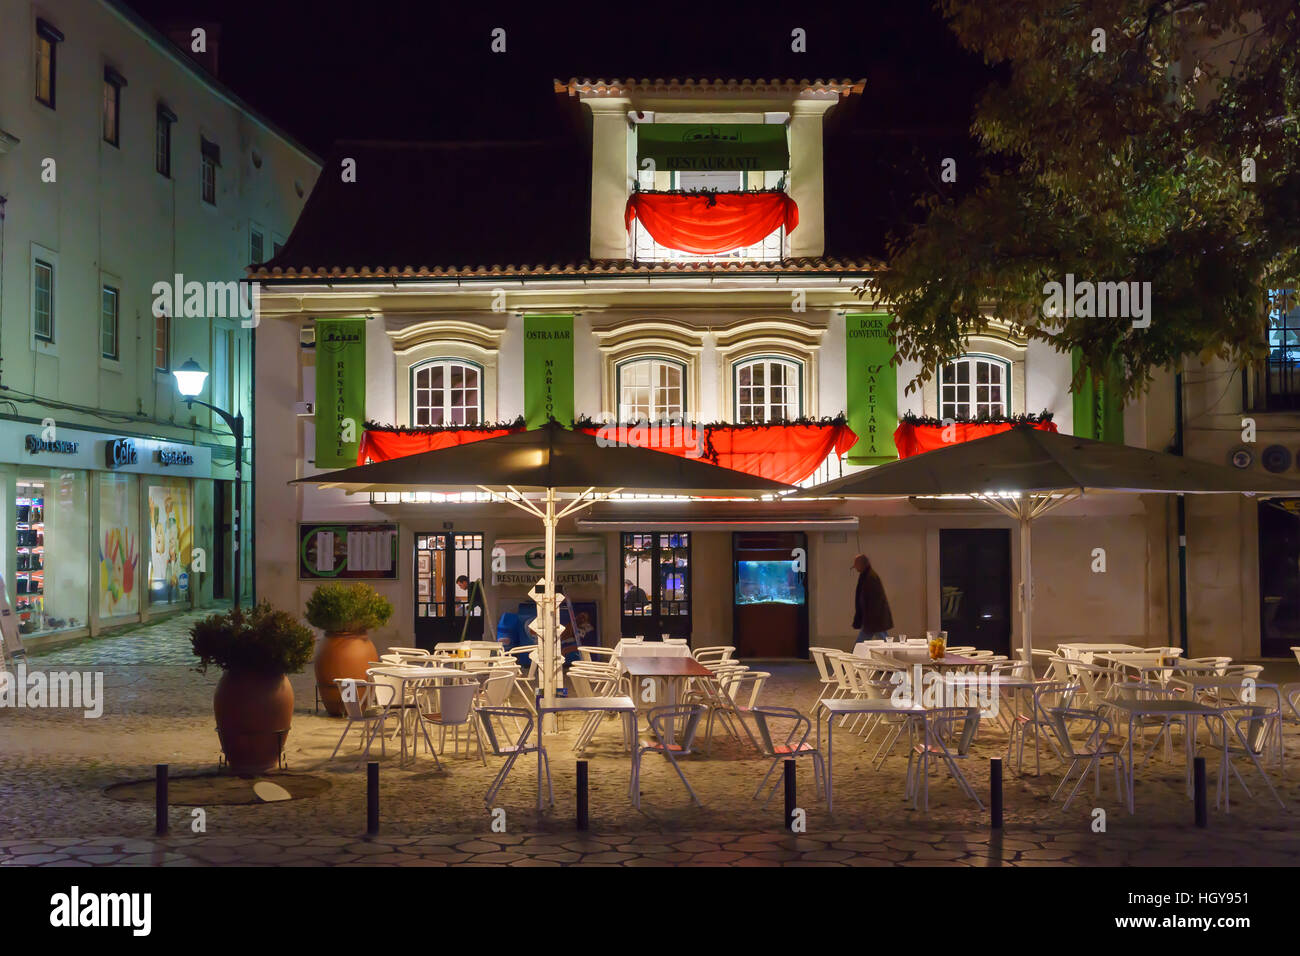 Brightly lit cafe with outside seating by night in Alcobabca, Portugal - Stock Image